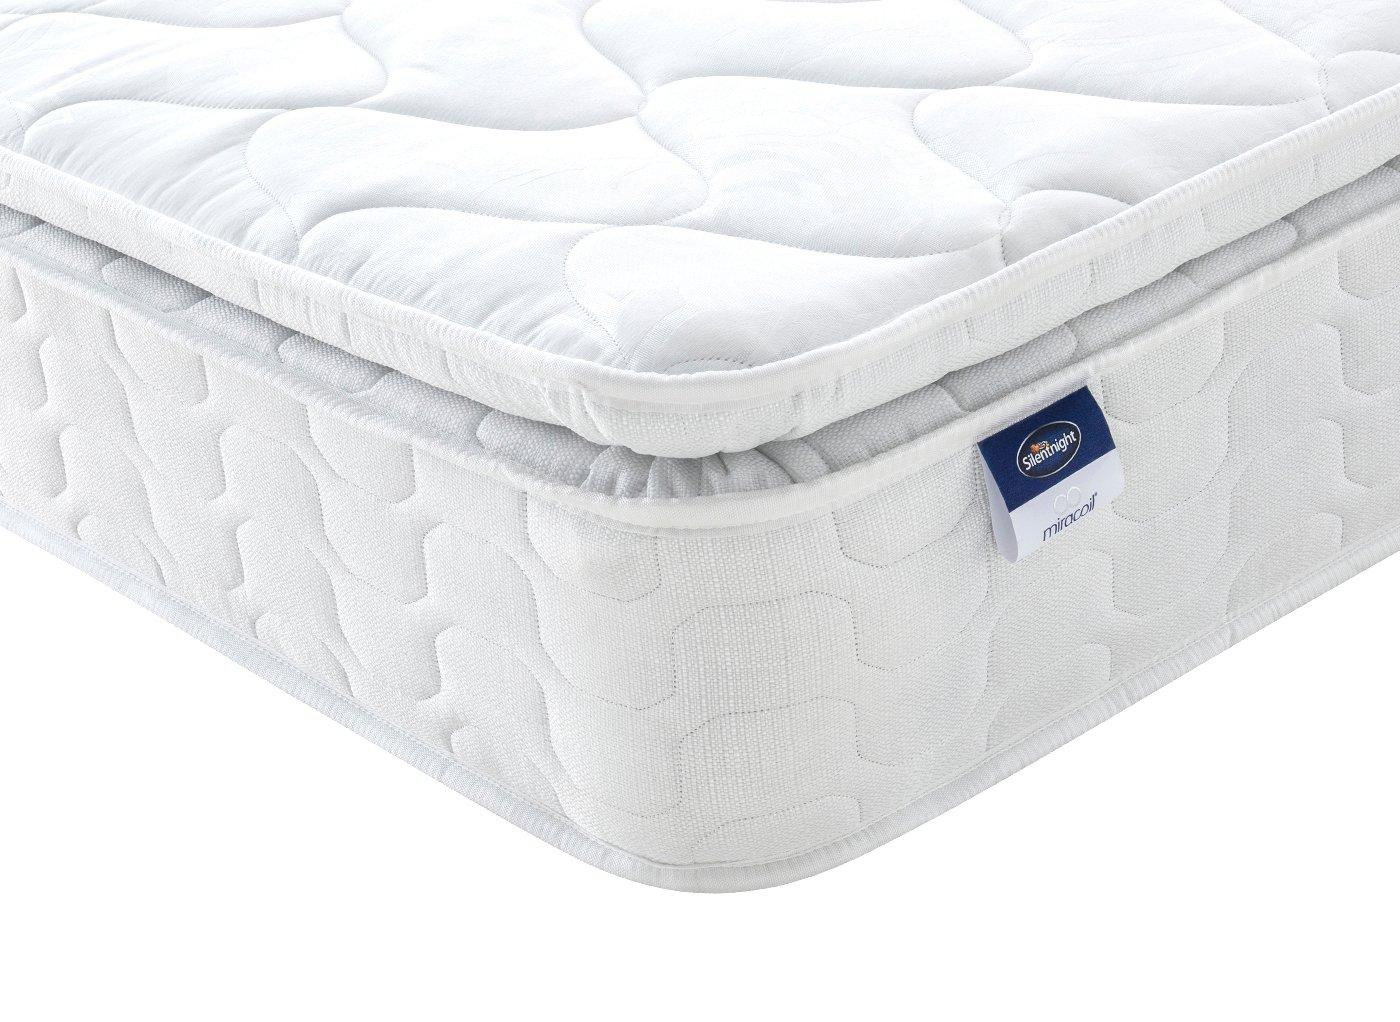 Silentnight Chesham SK Mattress 6'0 Super king